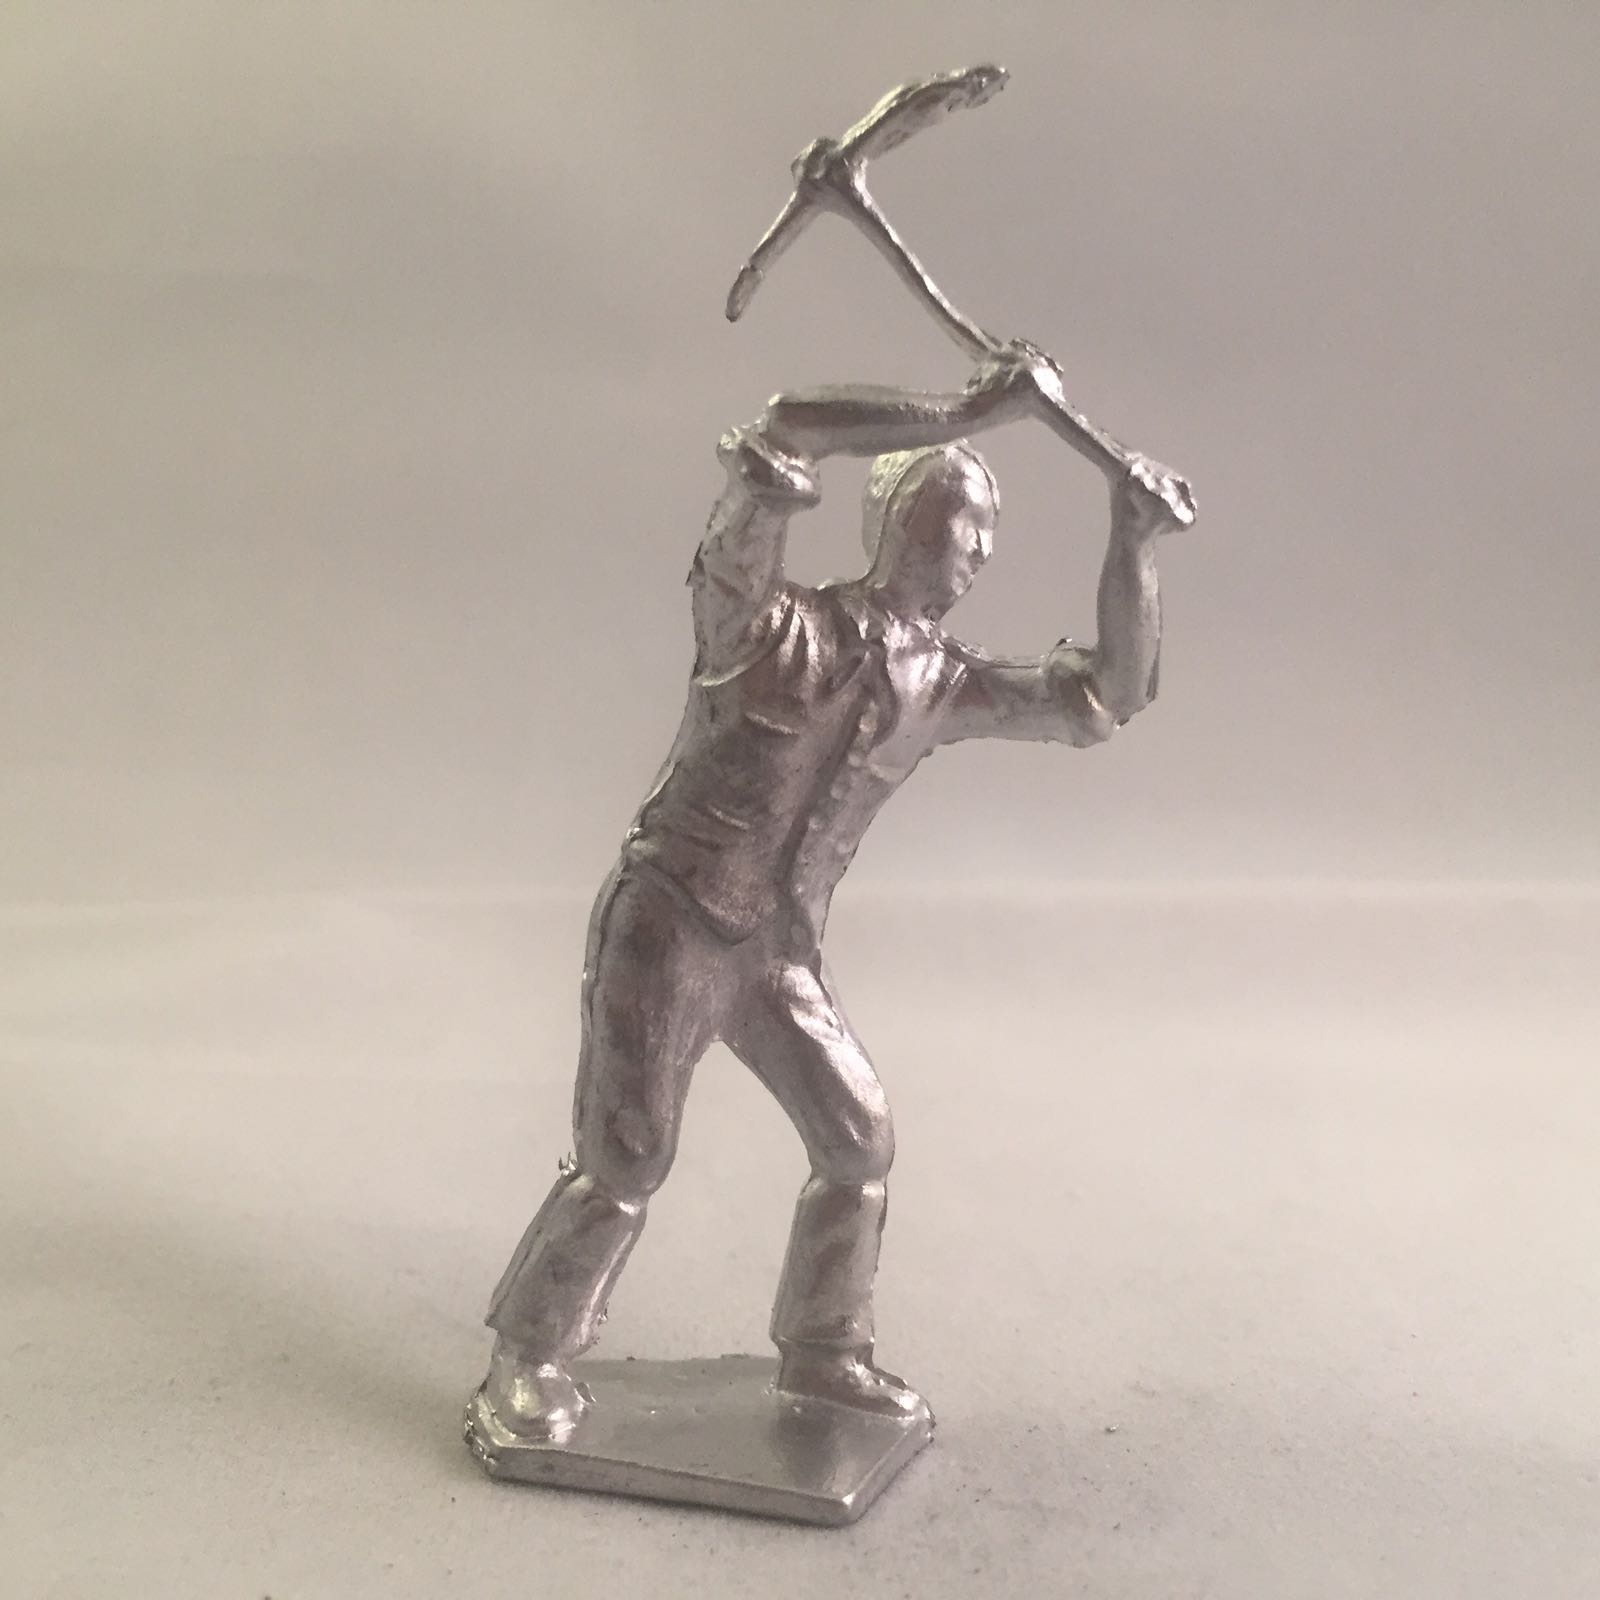 B5. Road Workman with Pick Axe